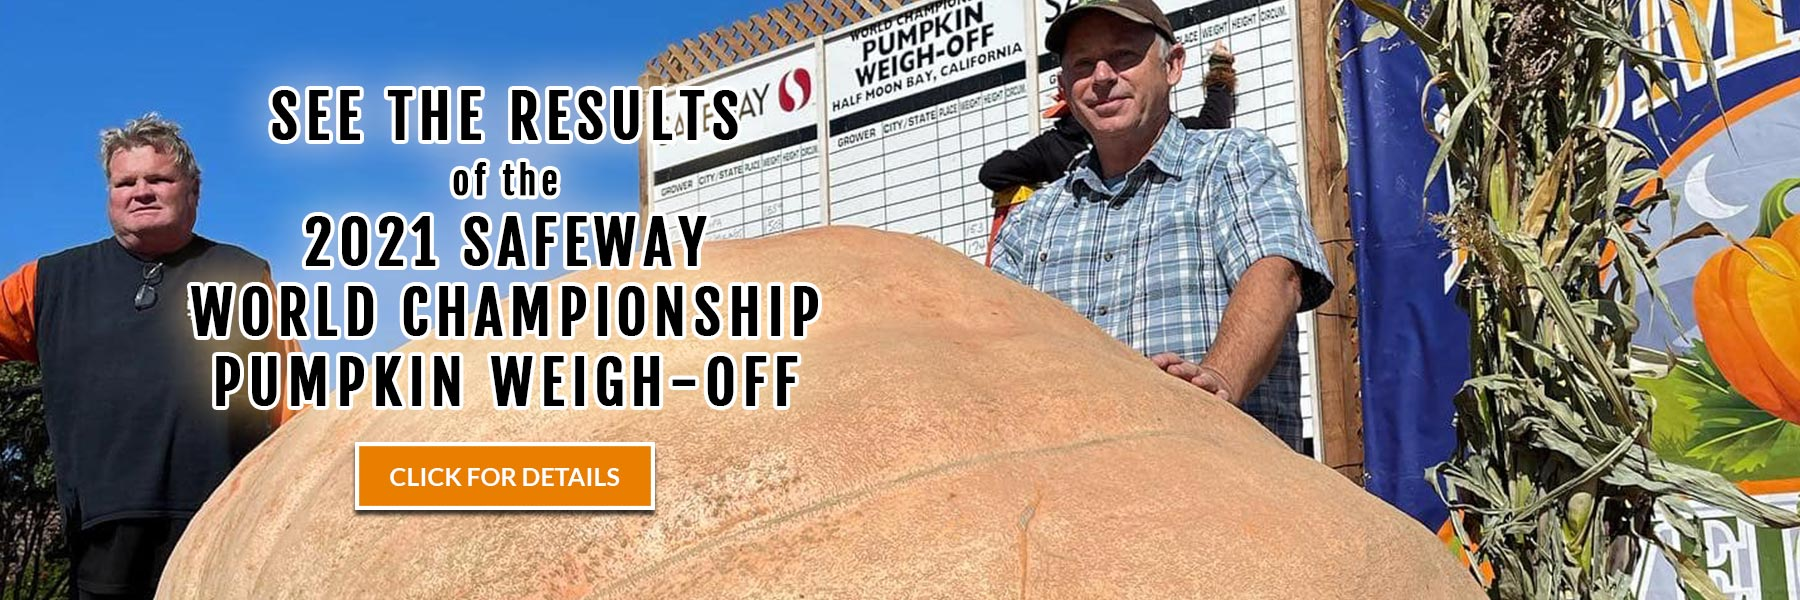 See the results of the 2021 Safeway World Championship Pumpkin Weigh-Off - click for details